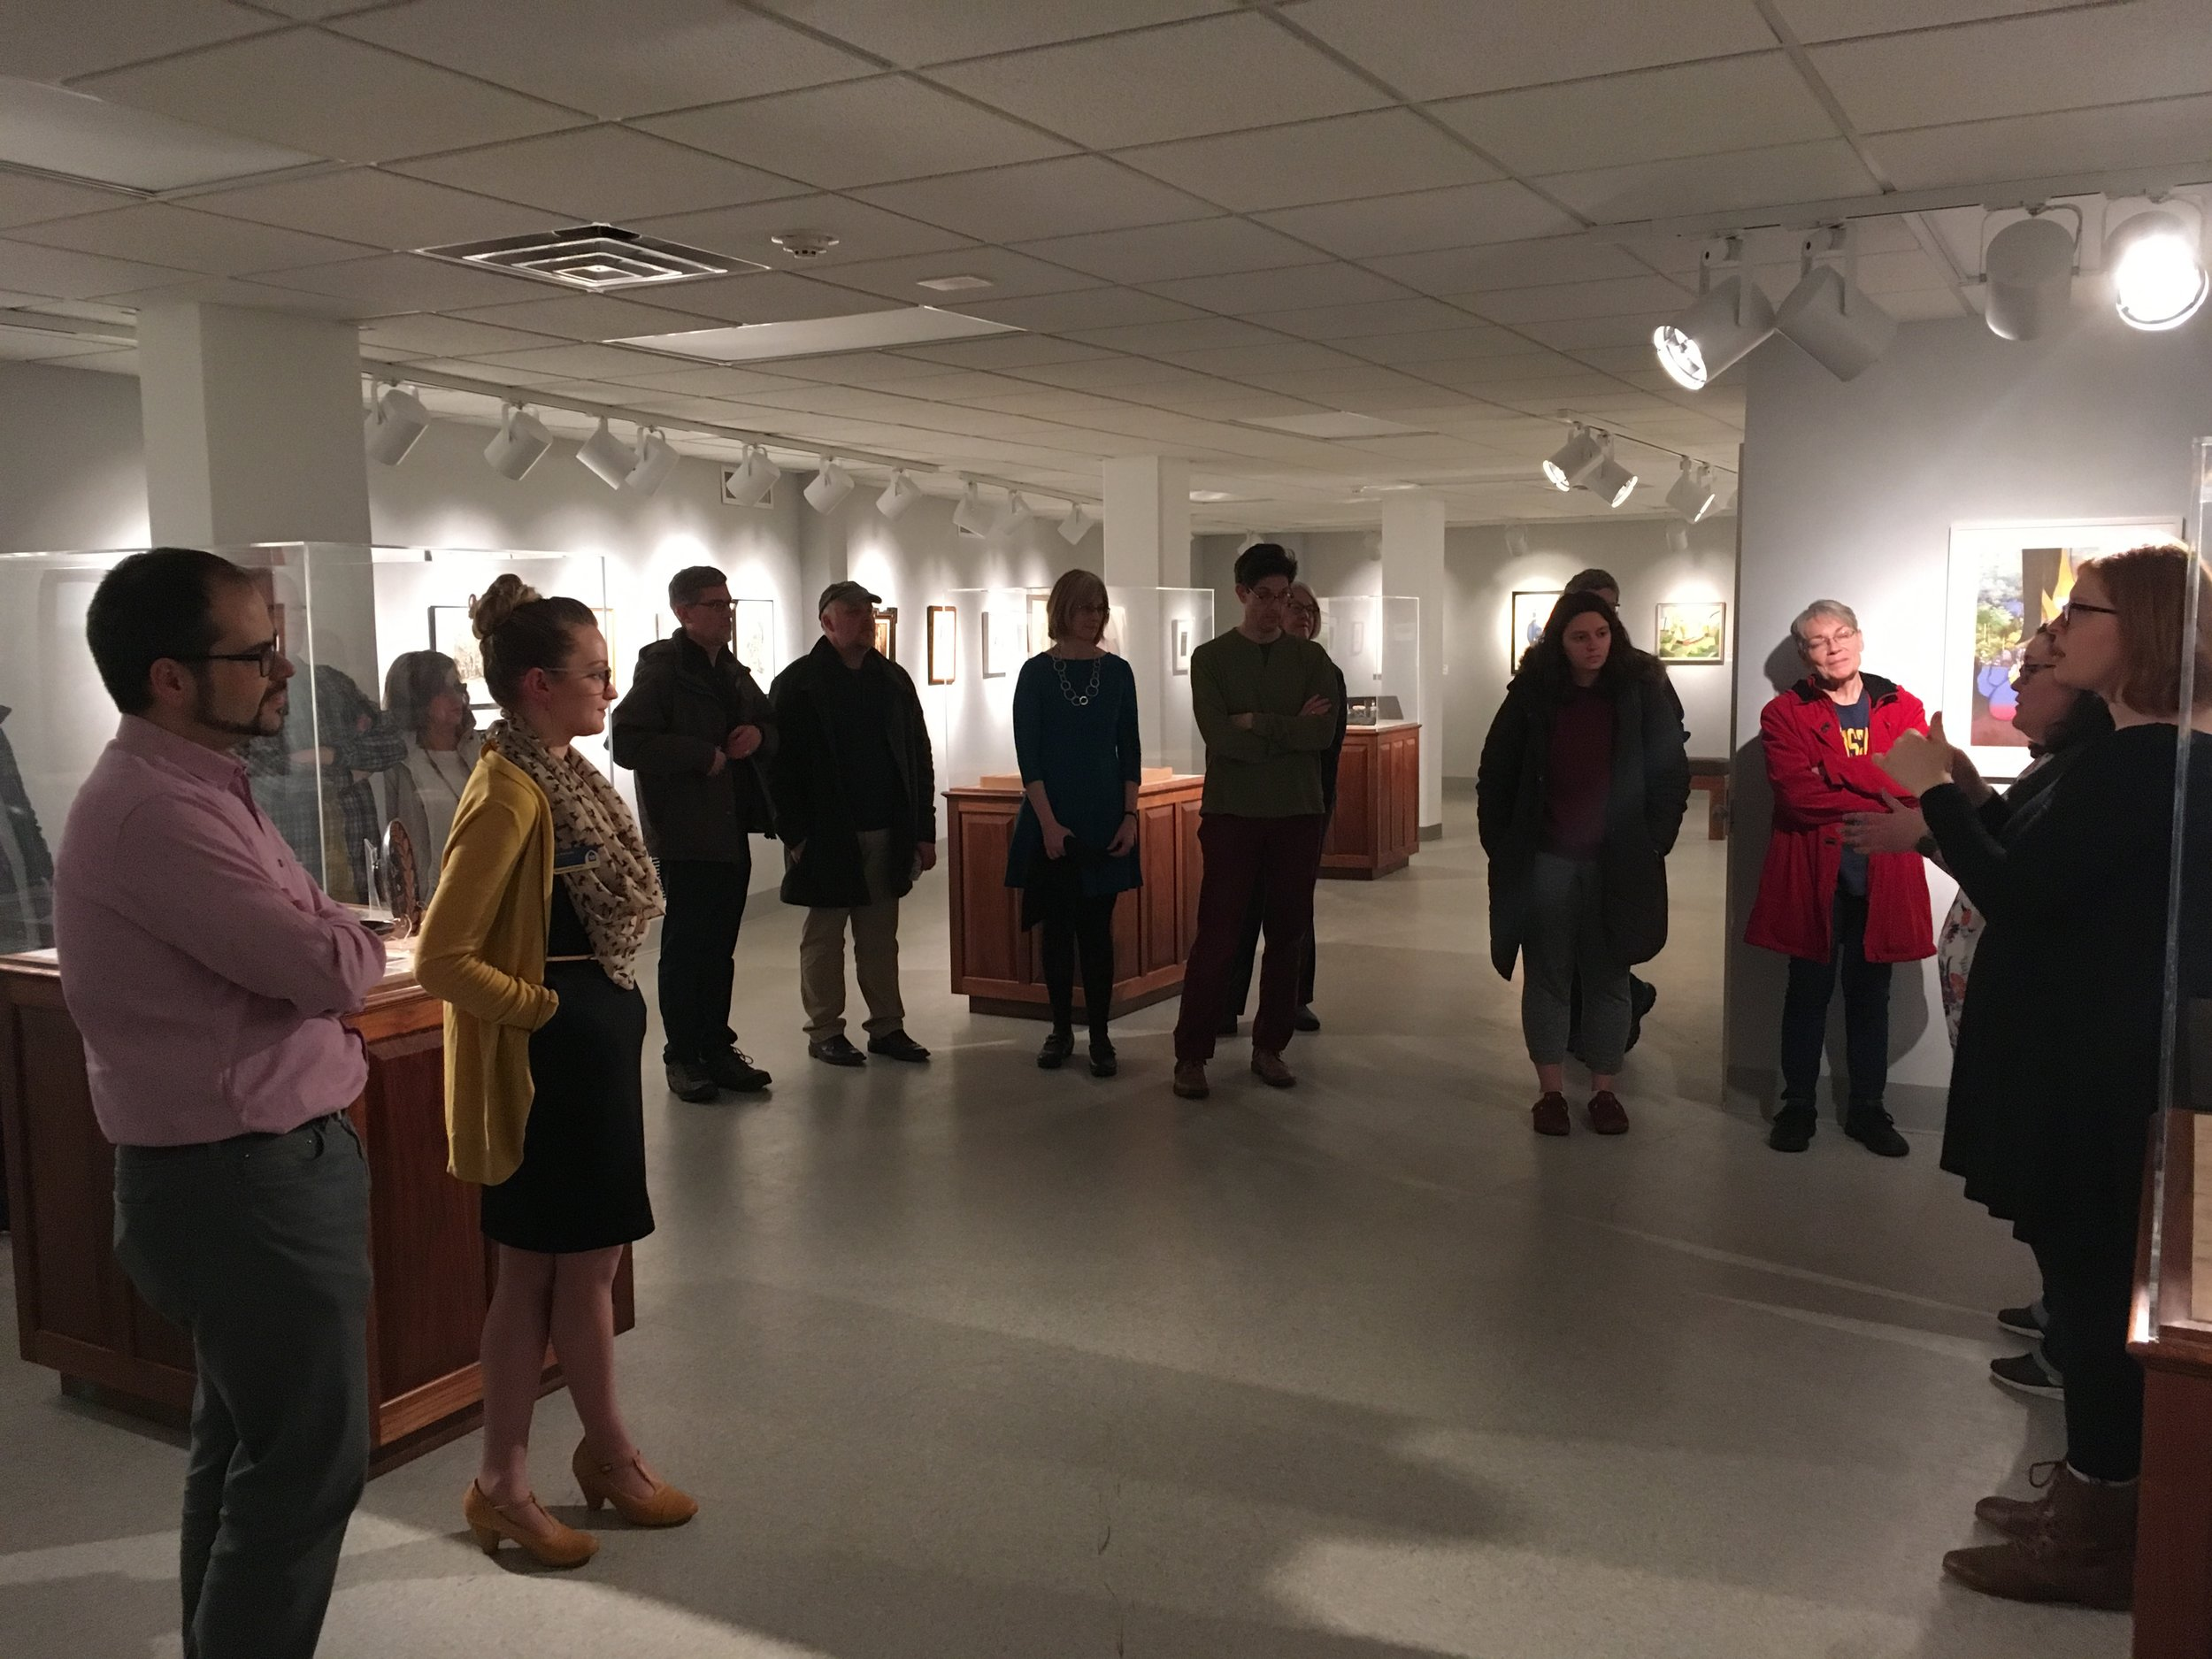 Charles Haag's Art + Archive at Augustana. Tour led by Dr. Kimberly La Palm (Scandinavian Studies) and Lisa Huntsha (Swenson Swedish Immigration Research Center). ASL interpreter: Bambi Suits.